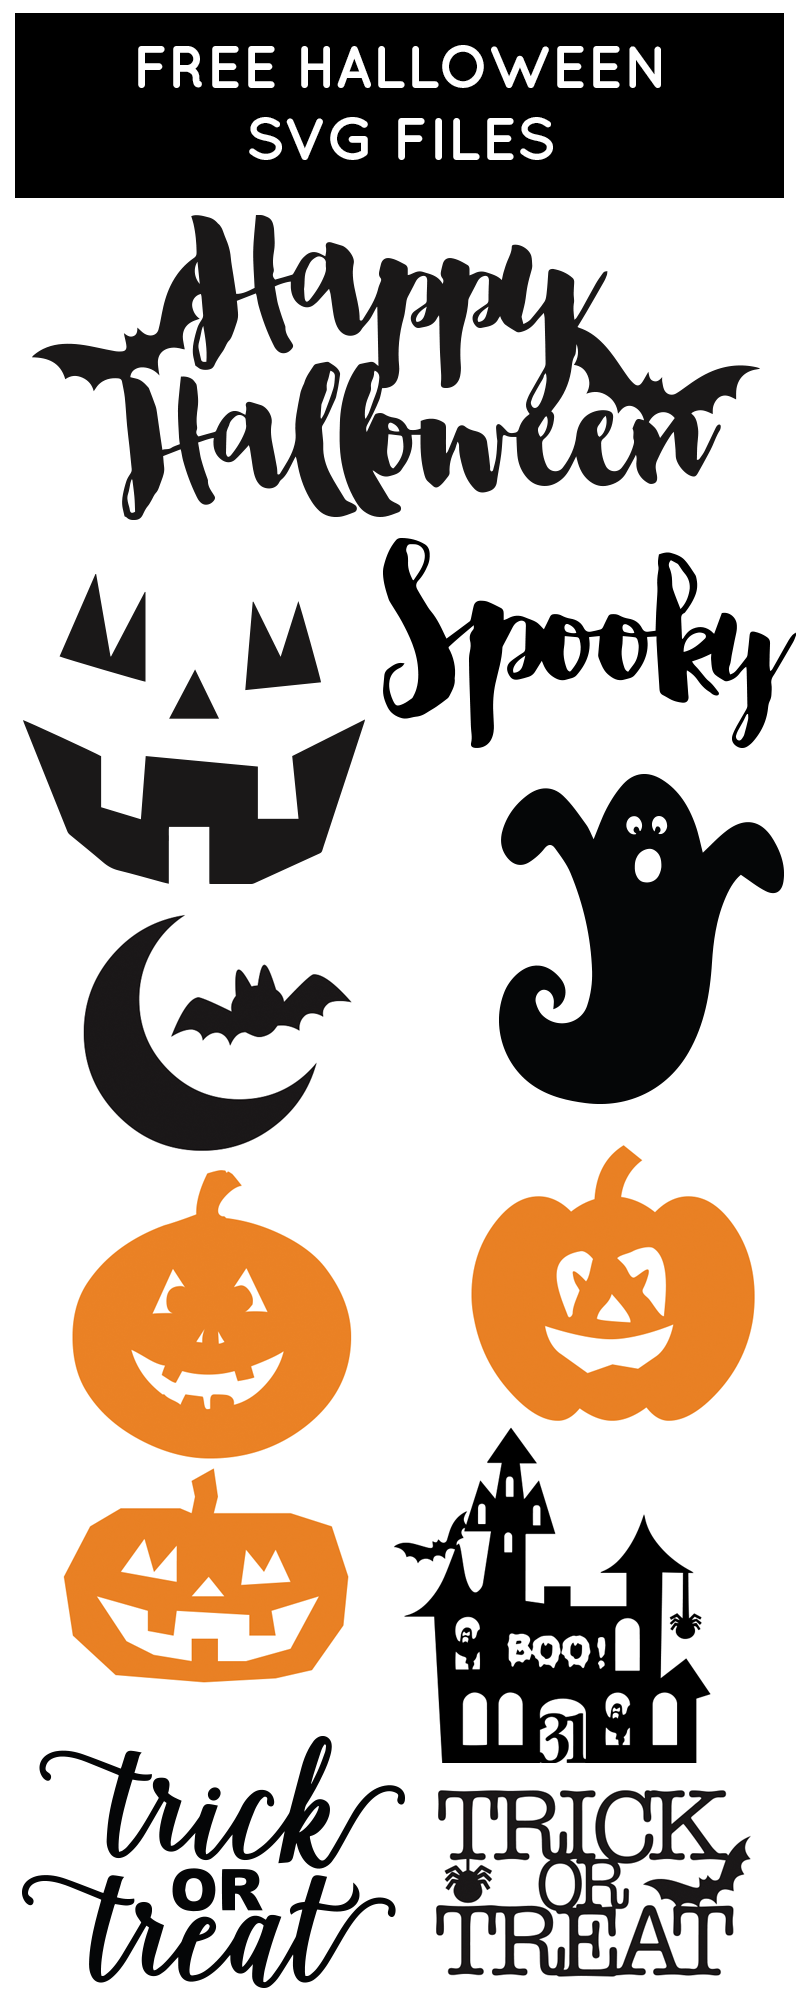 free halloween svg files #800, Download drawings